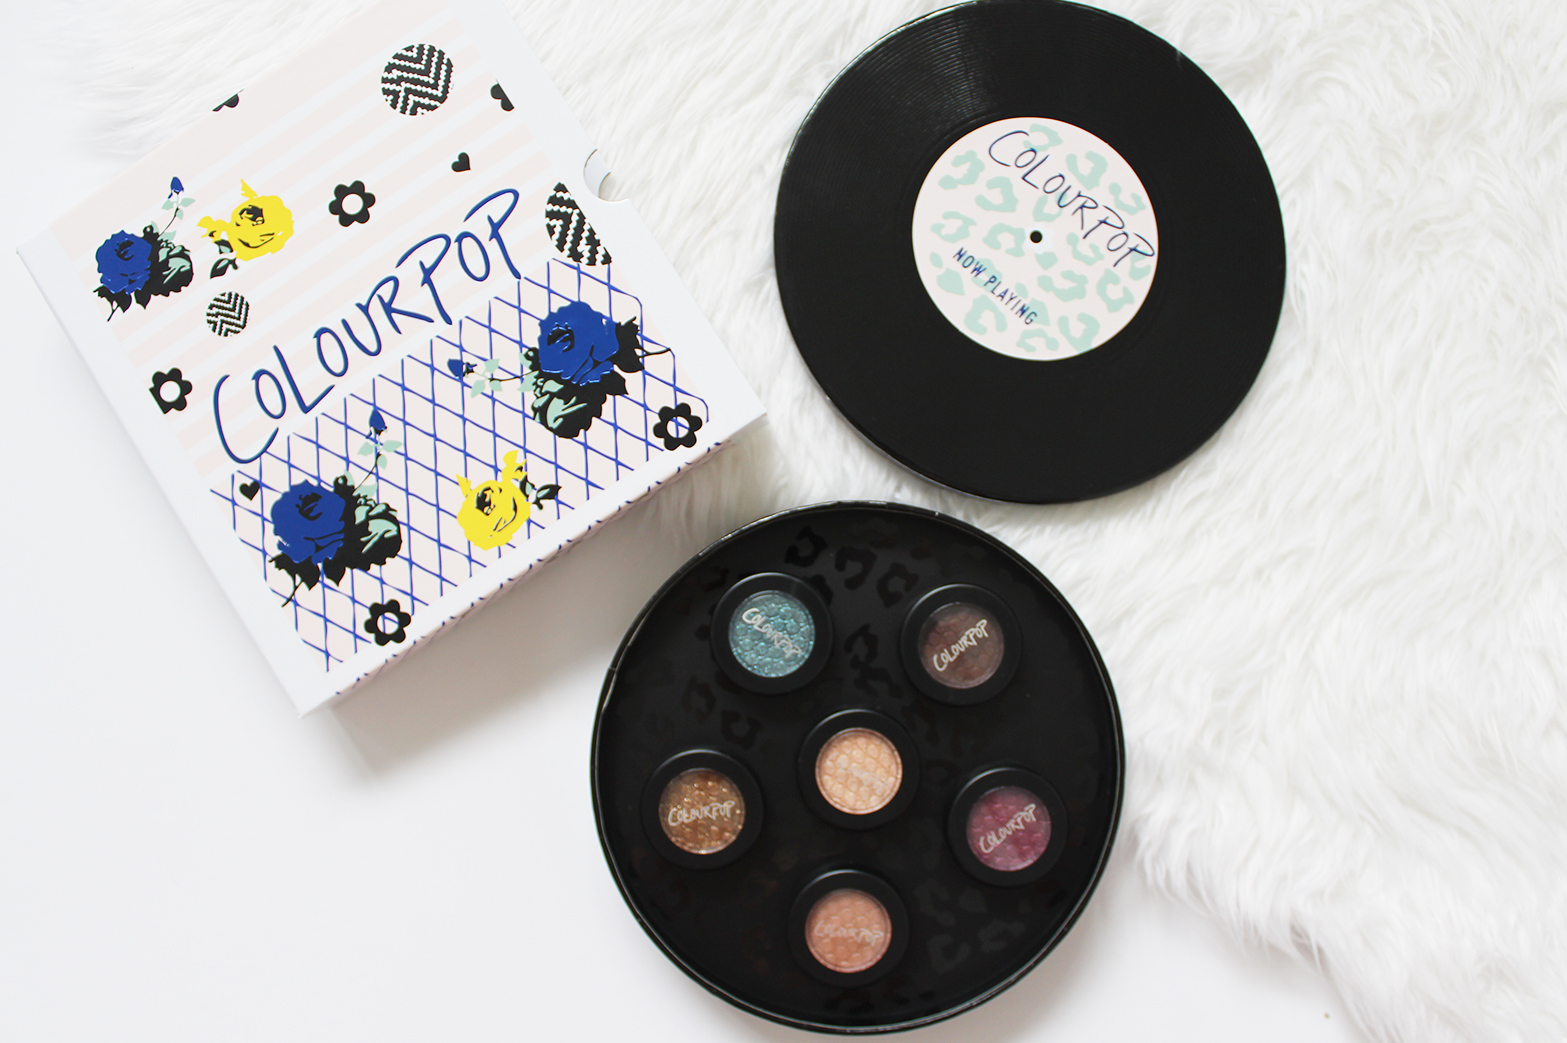 COLOURPOP COSMETICS | Hello Kitty, Christmas Collection, Mini Sets - Haul + Swatches - CassandraMyee